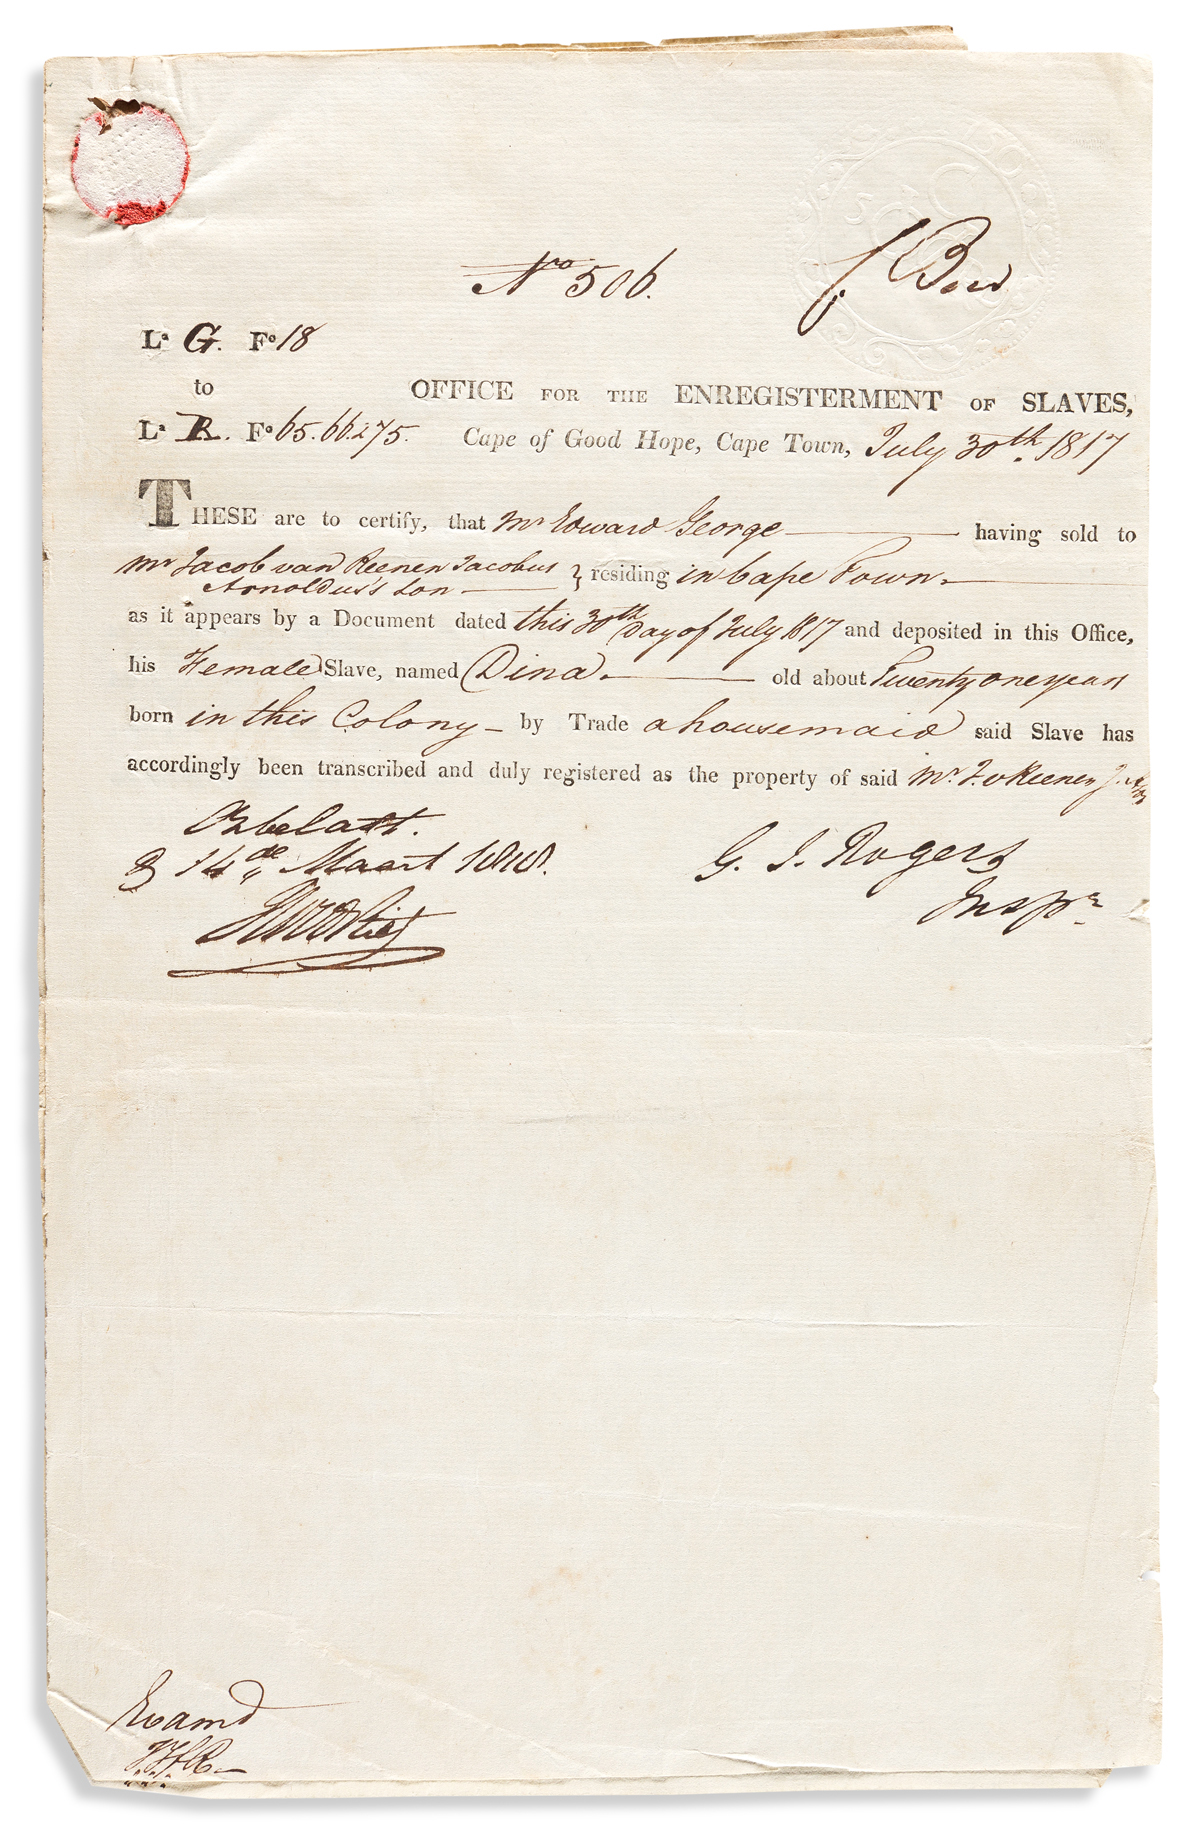 (SLAVERY AND ABOLITION--AFRICA.) Certificates for a woman named Dina sold twice in two days in British Cape Town.